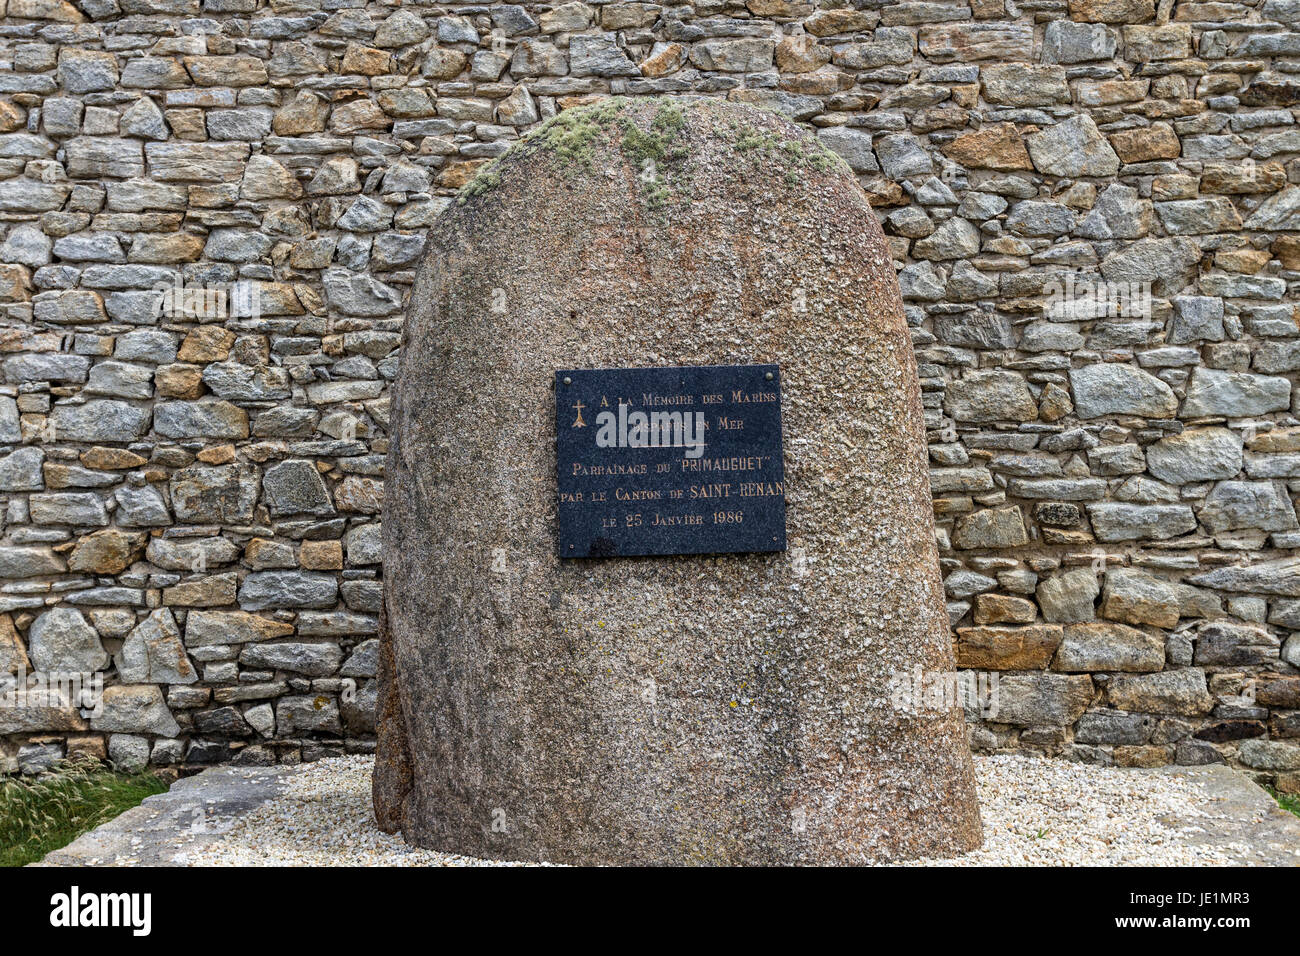 Memorial to Sailors Lost at Sea on the Pointe de Corsen, Plouarzel, Bittany, France - Stock Image